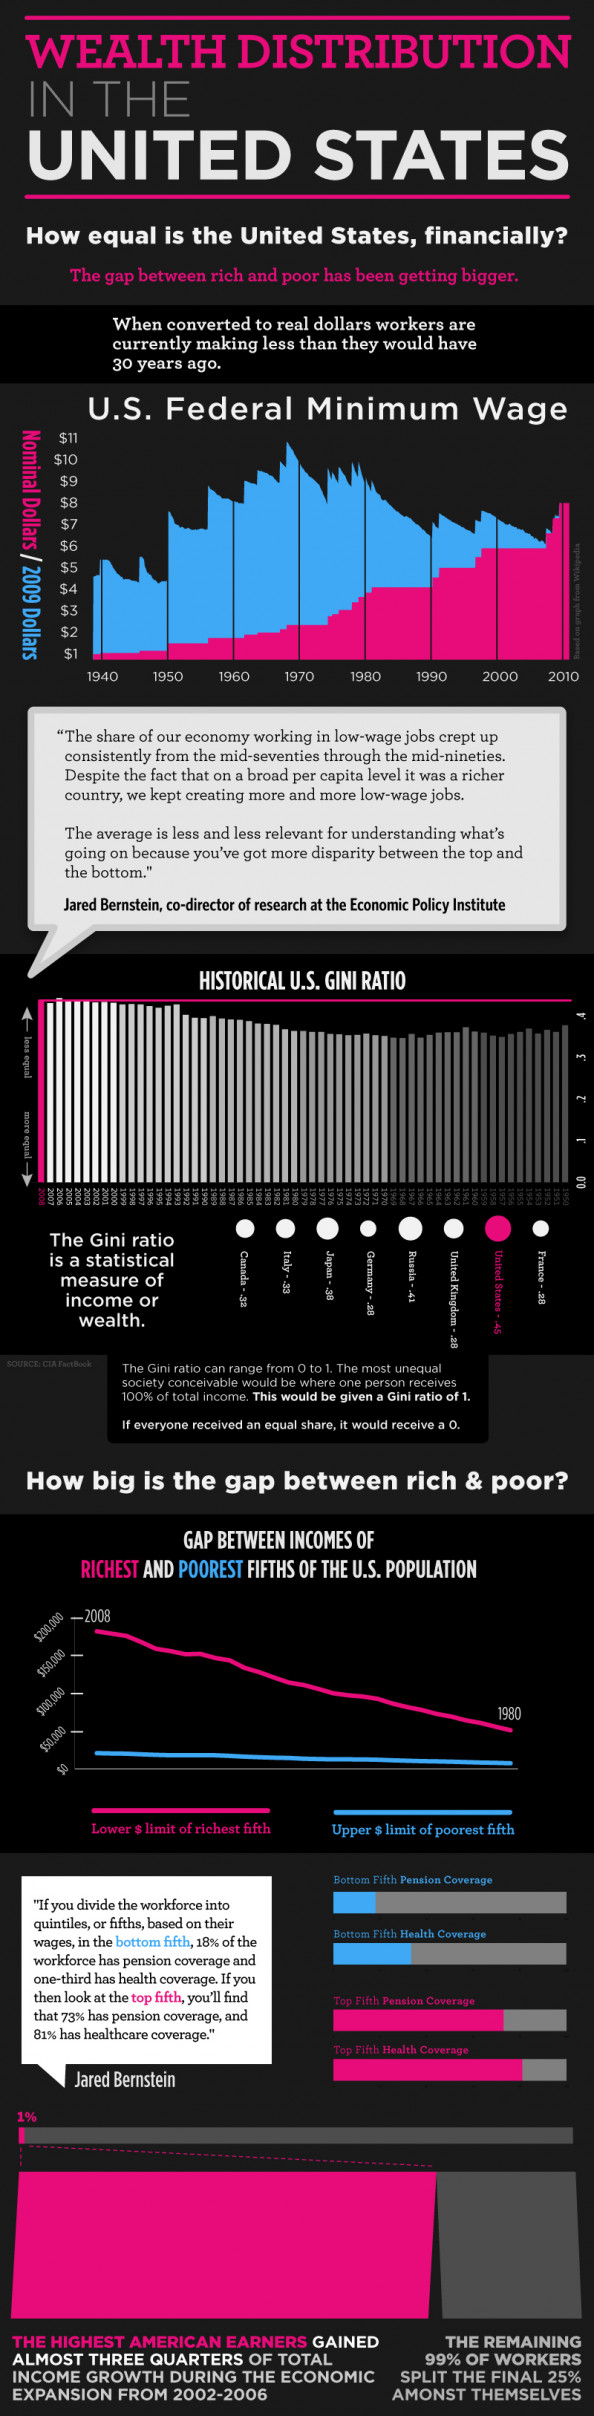 Wealth Distribution in the United States Infographic